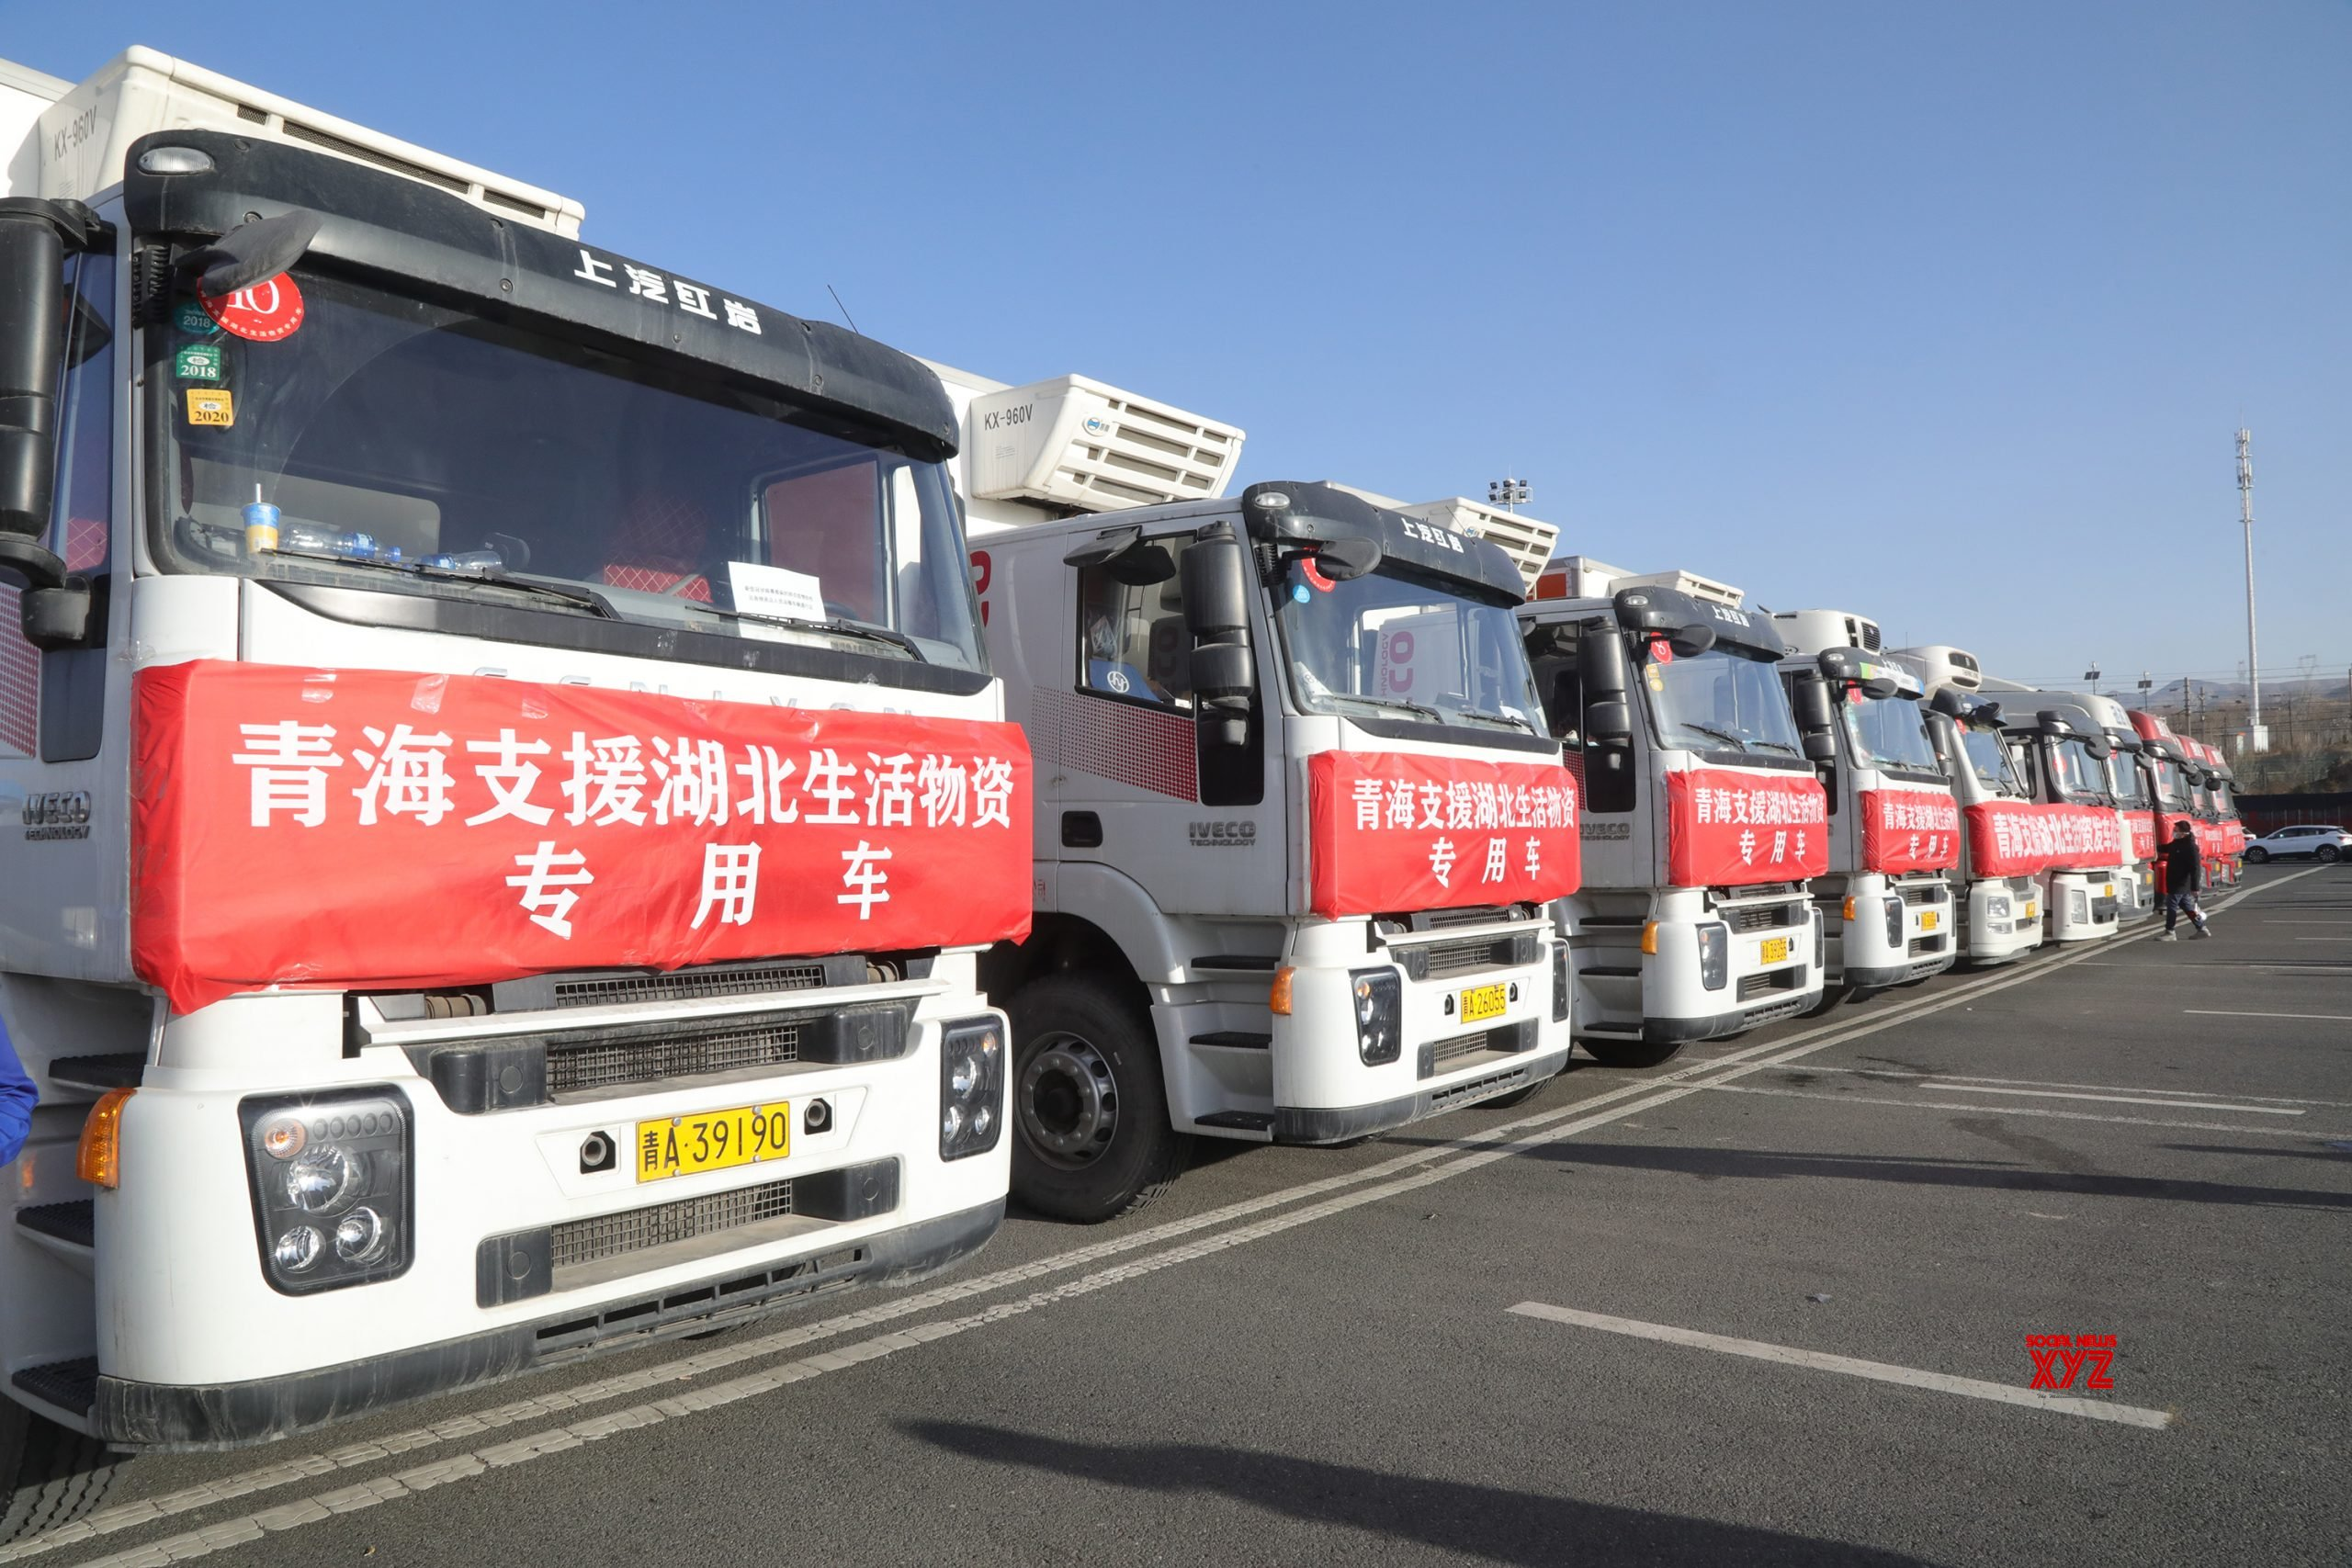 CHINA - QINGHAI - NCP - HUBEI - SUPPORT #Gallery